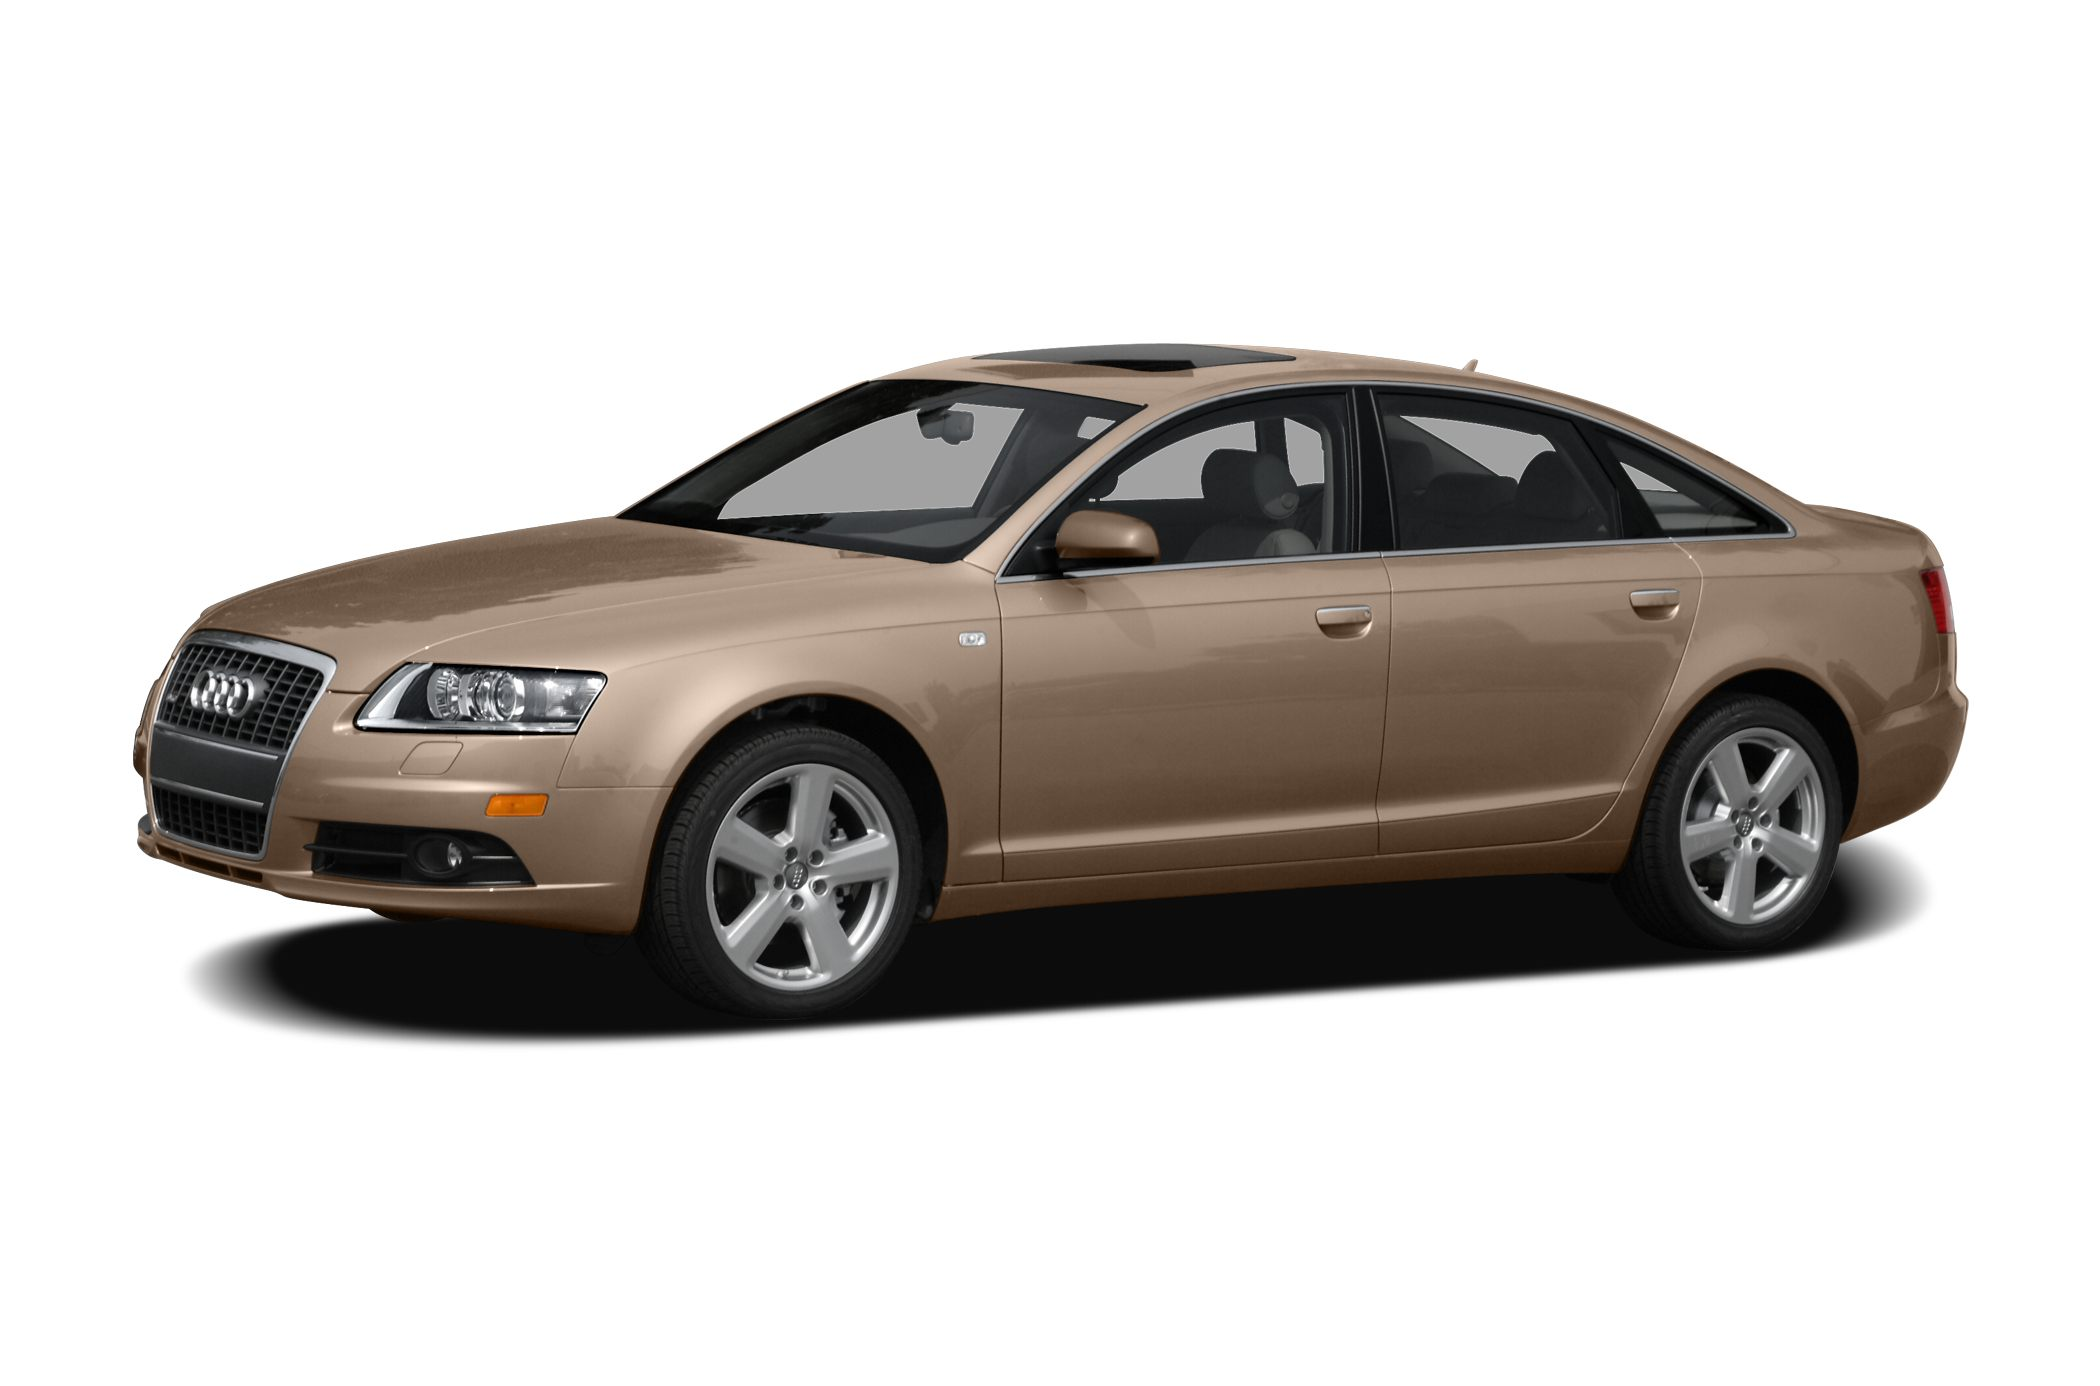 2008 Audi A6 3.2 Quattro Sedan for sale in Anderson for $15,993 with 74,057 miles.